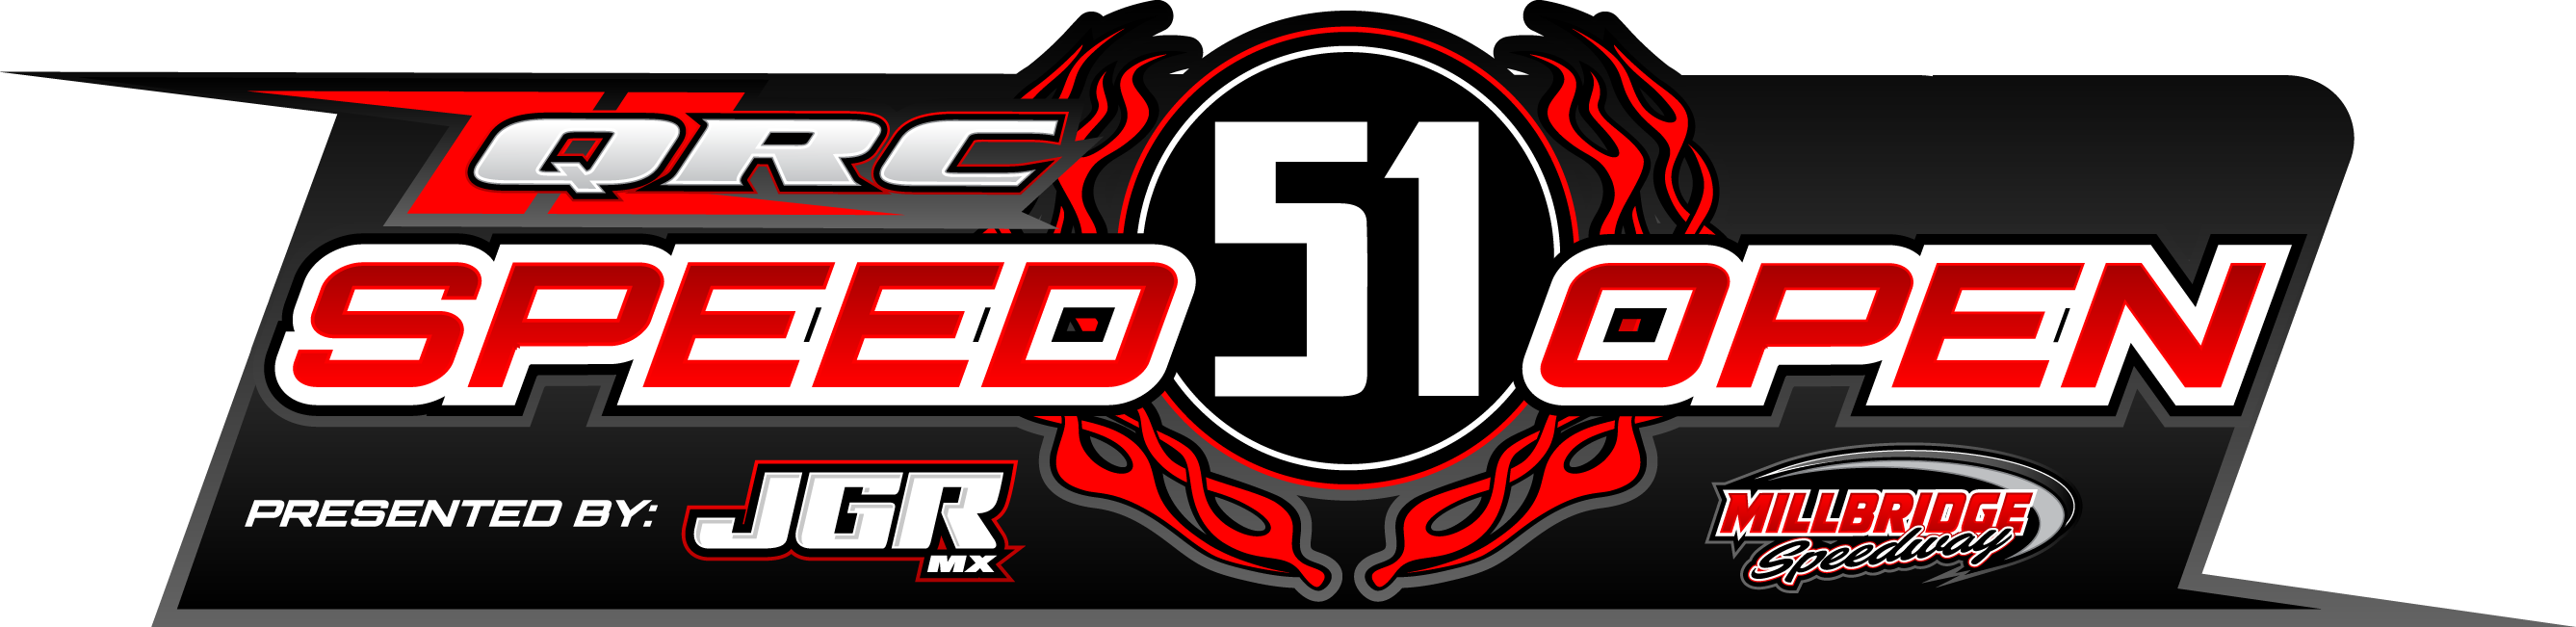 QRC Speed 51 Open Presneted by JGRmx Rules update